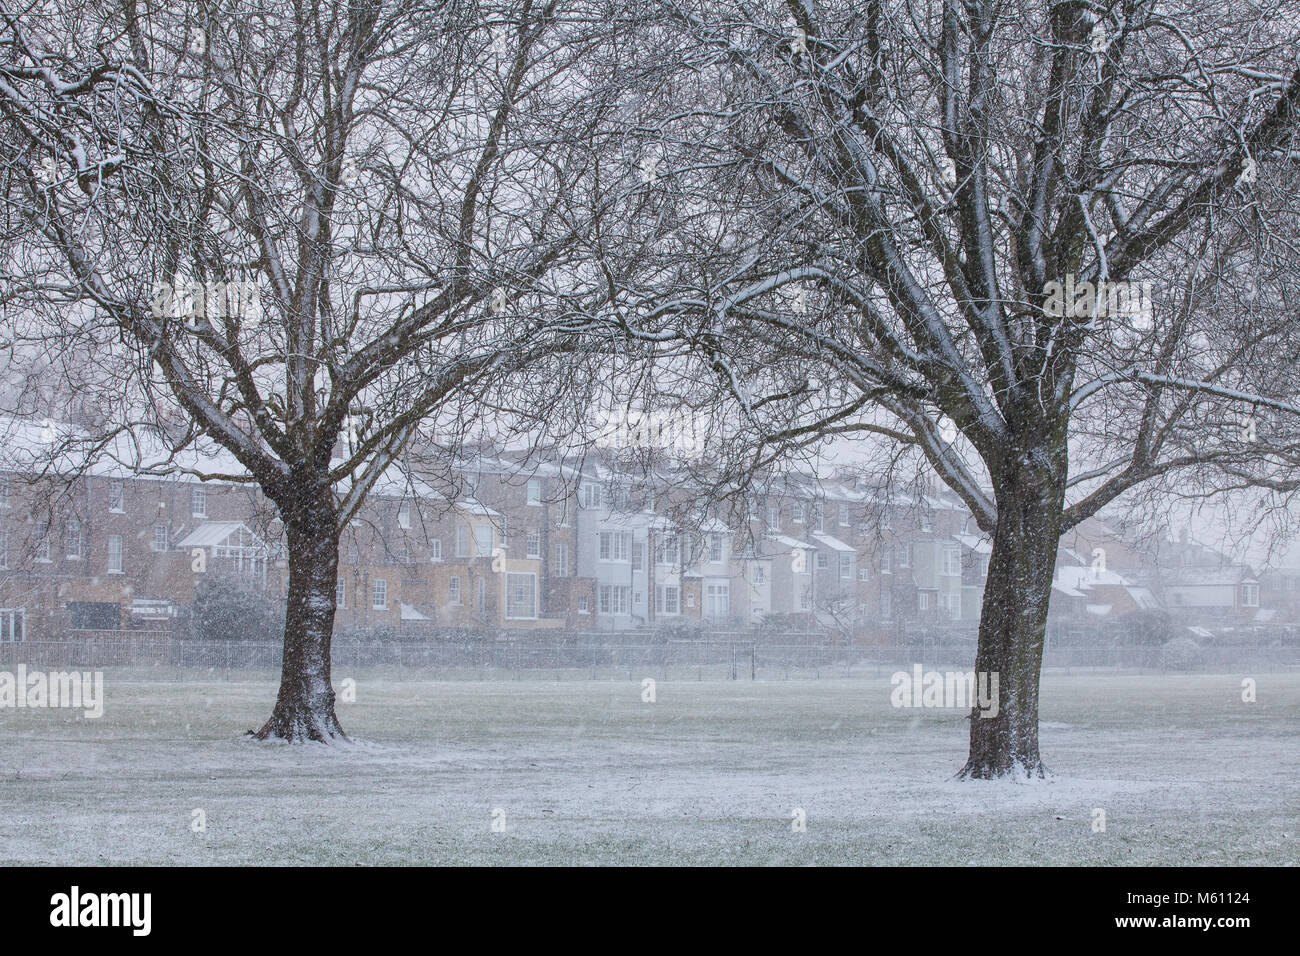 Windsor, UK. 27th February, 2018. Snow falls in Windsor Great Park. Credit: Mark Kerrison/Alamy Live News Stock Photo